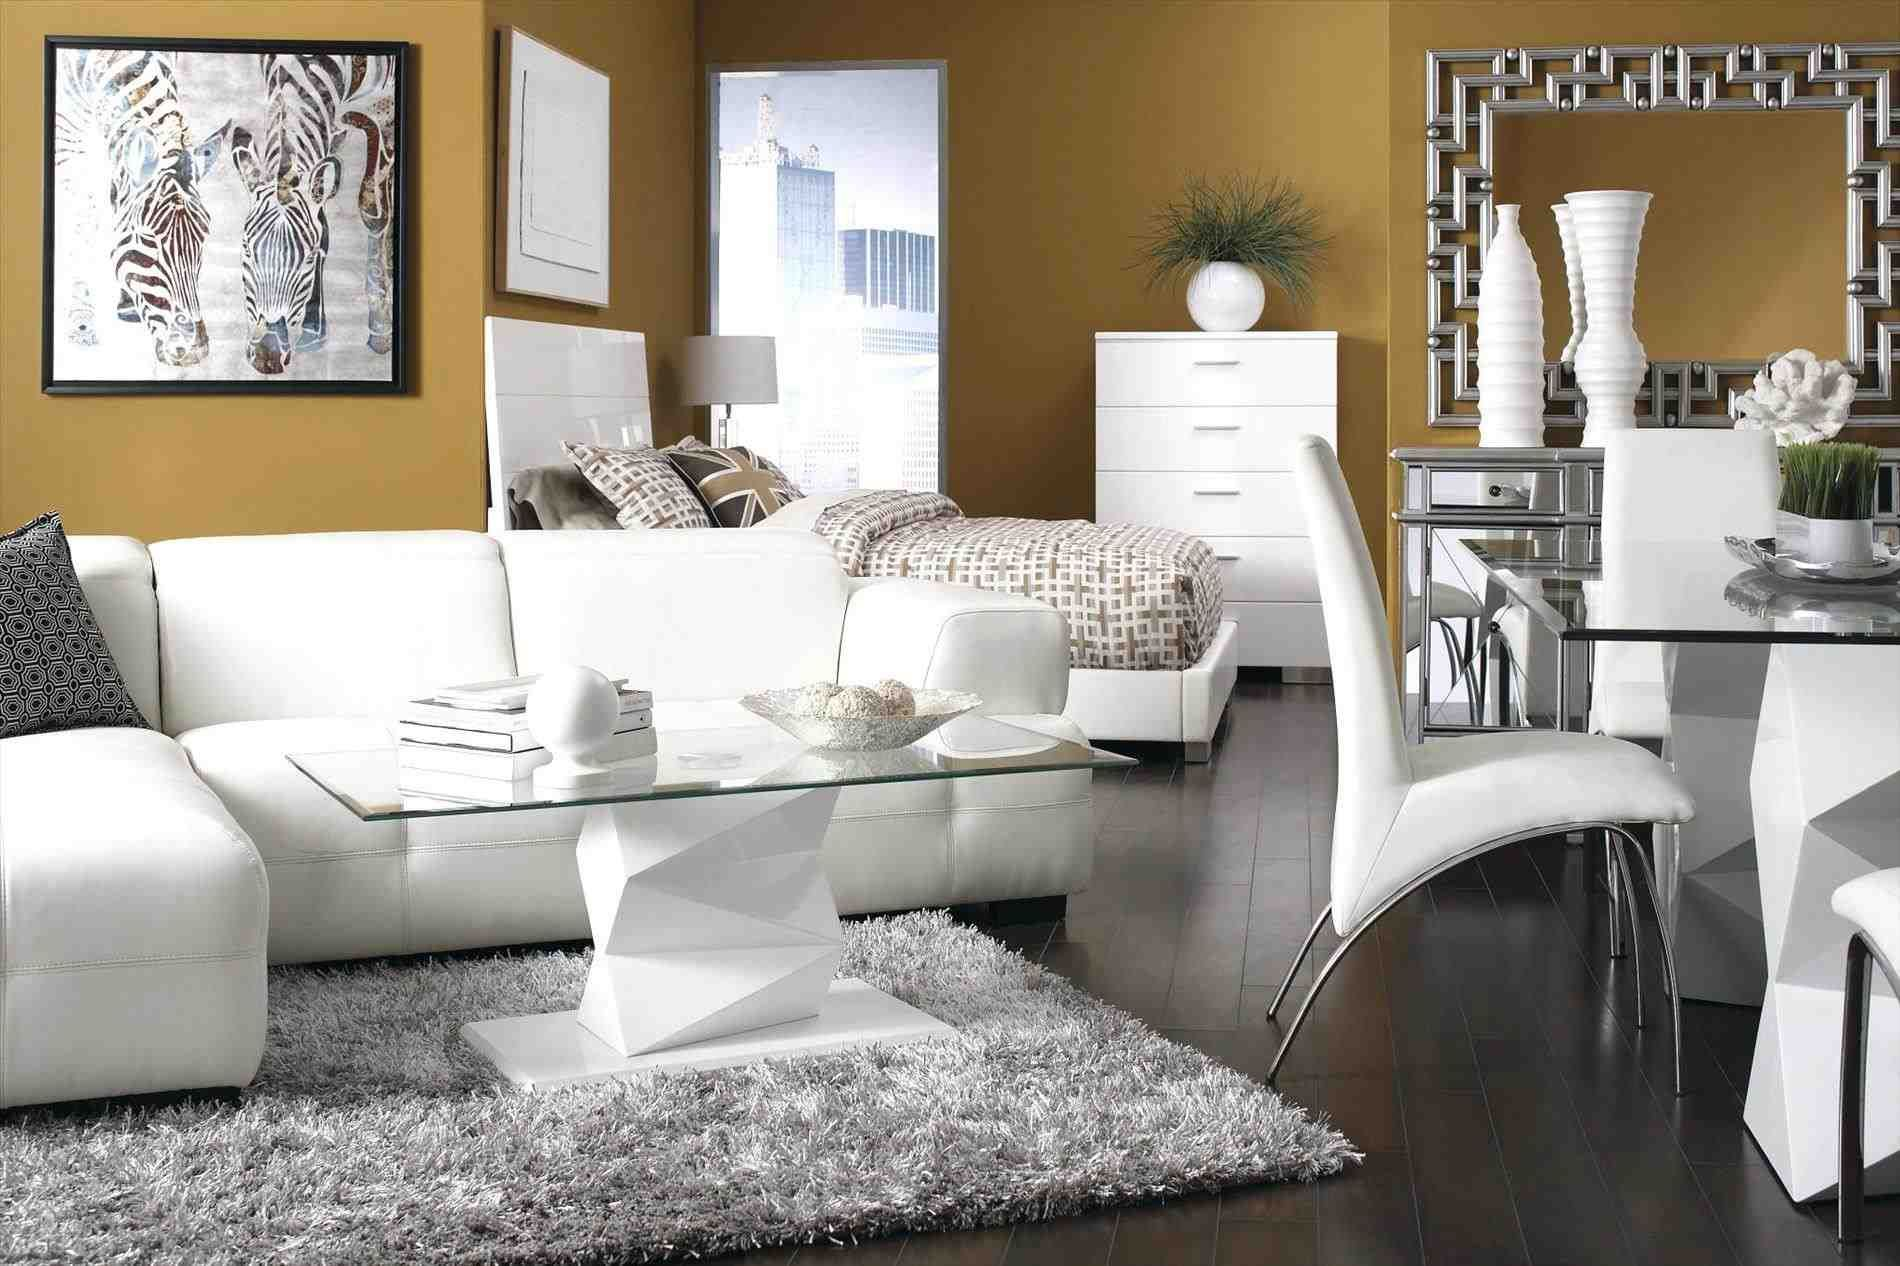 Cheap modern furniture las vegas bedroom sets king clearance free shipping cheap queen with mattress